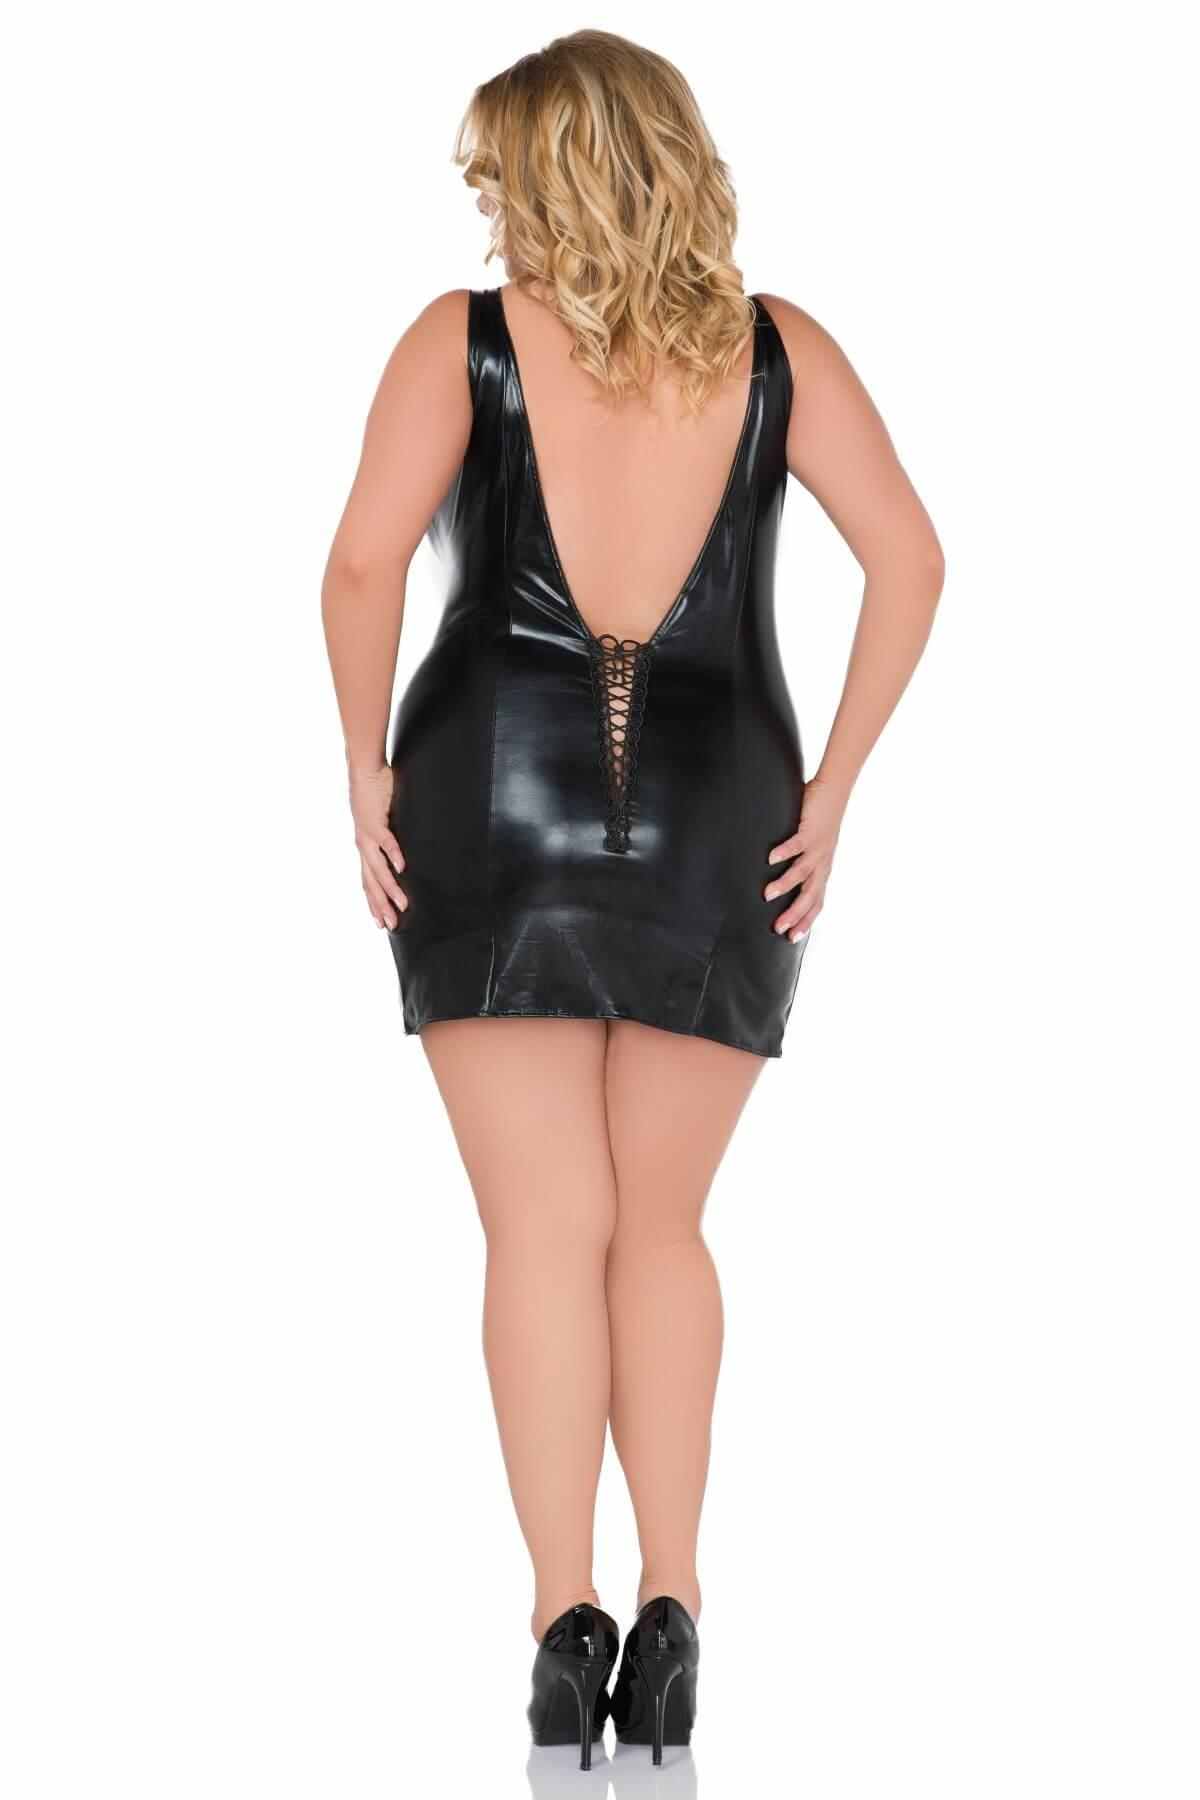 Wet Look Plus Size Chemise with V back